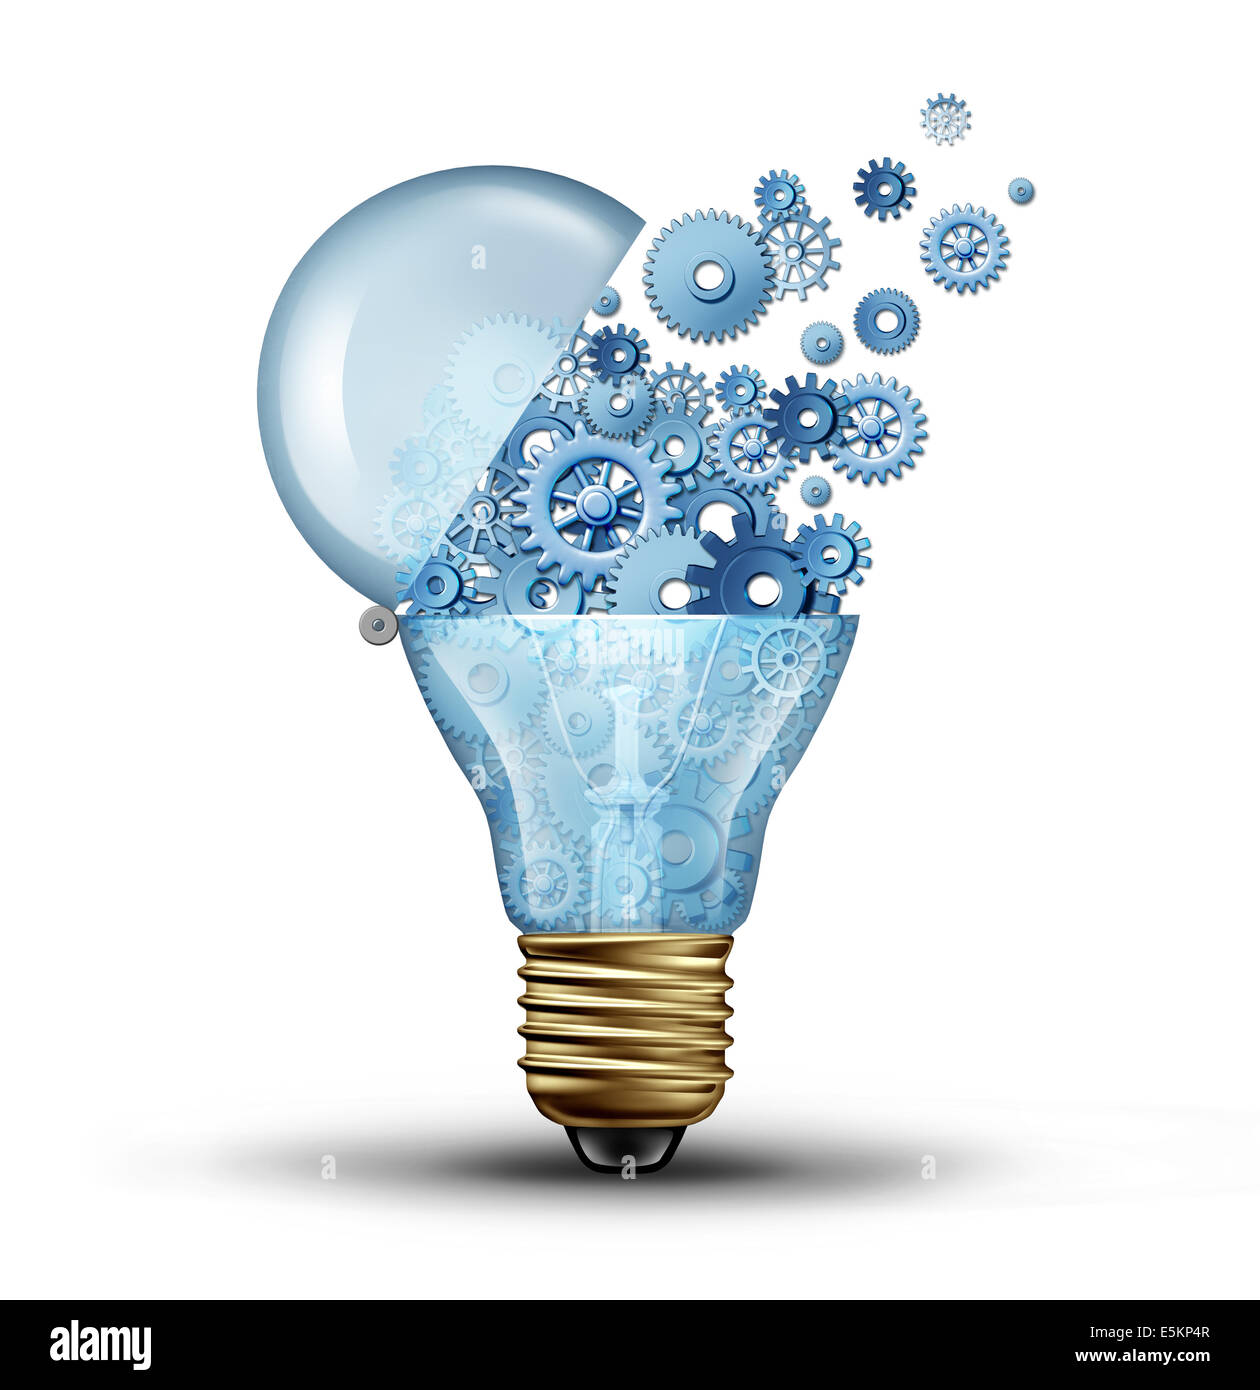 Creative technology and communication concept as an open door light bulb tranfering gears and cogs as a  business - Stock Image